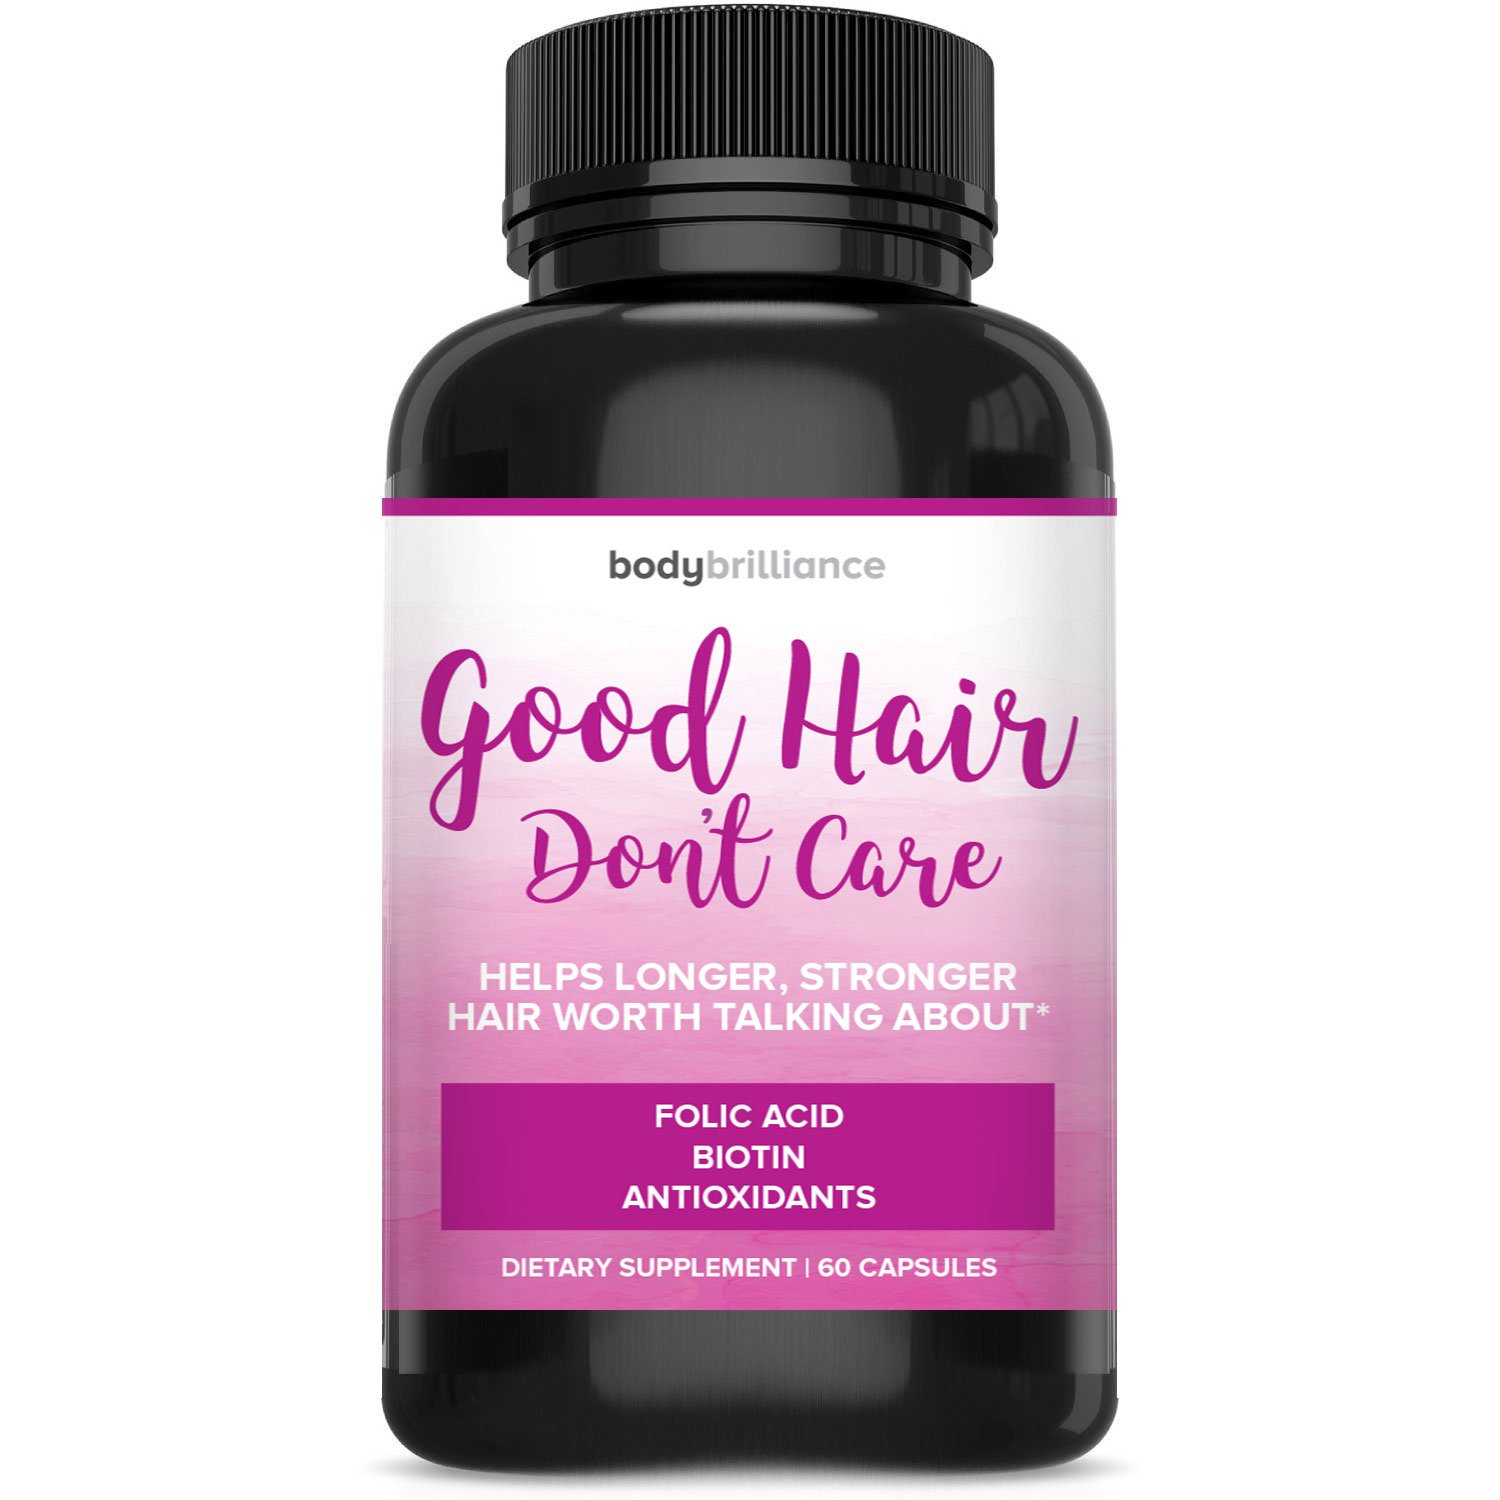 Good Hair Don't Care - Best All Natural Vitamins for Faster Hair Growth – Get Longer, Stronger, Thicker Hair – for All Hair Types – Proprietary Blend of Biotin, Folic Acid, Bamboo and More!